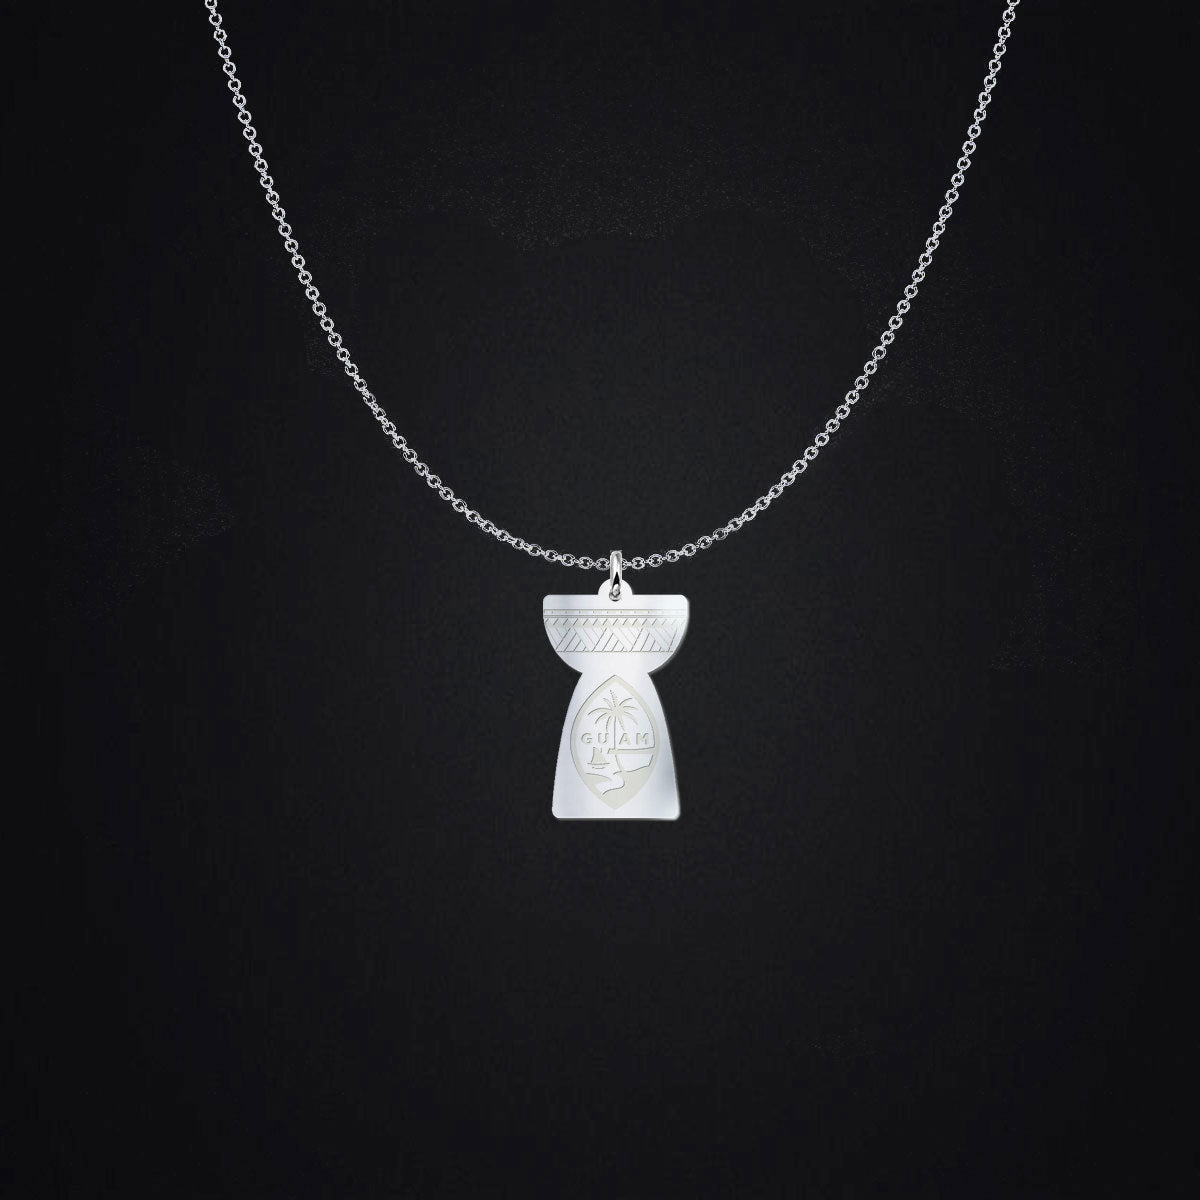 Latte Stone Guam Seal Engraved Sterling Silver Necklace